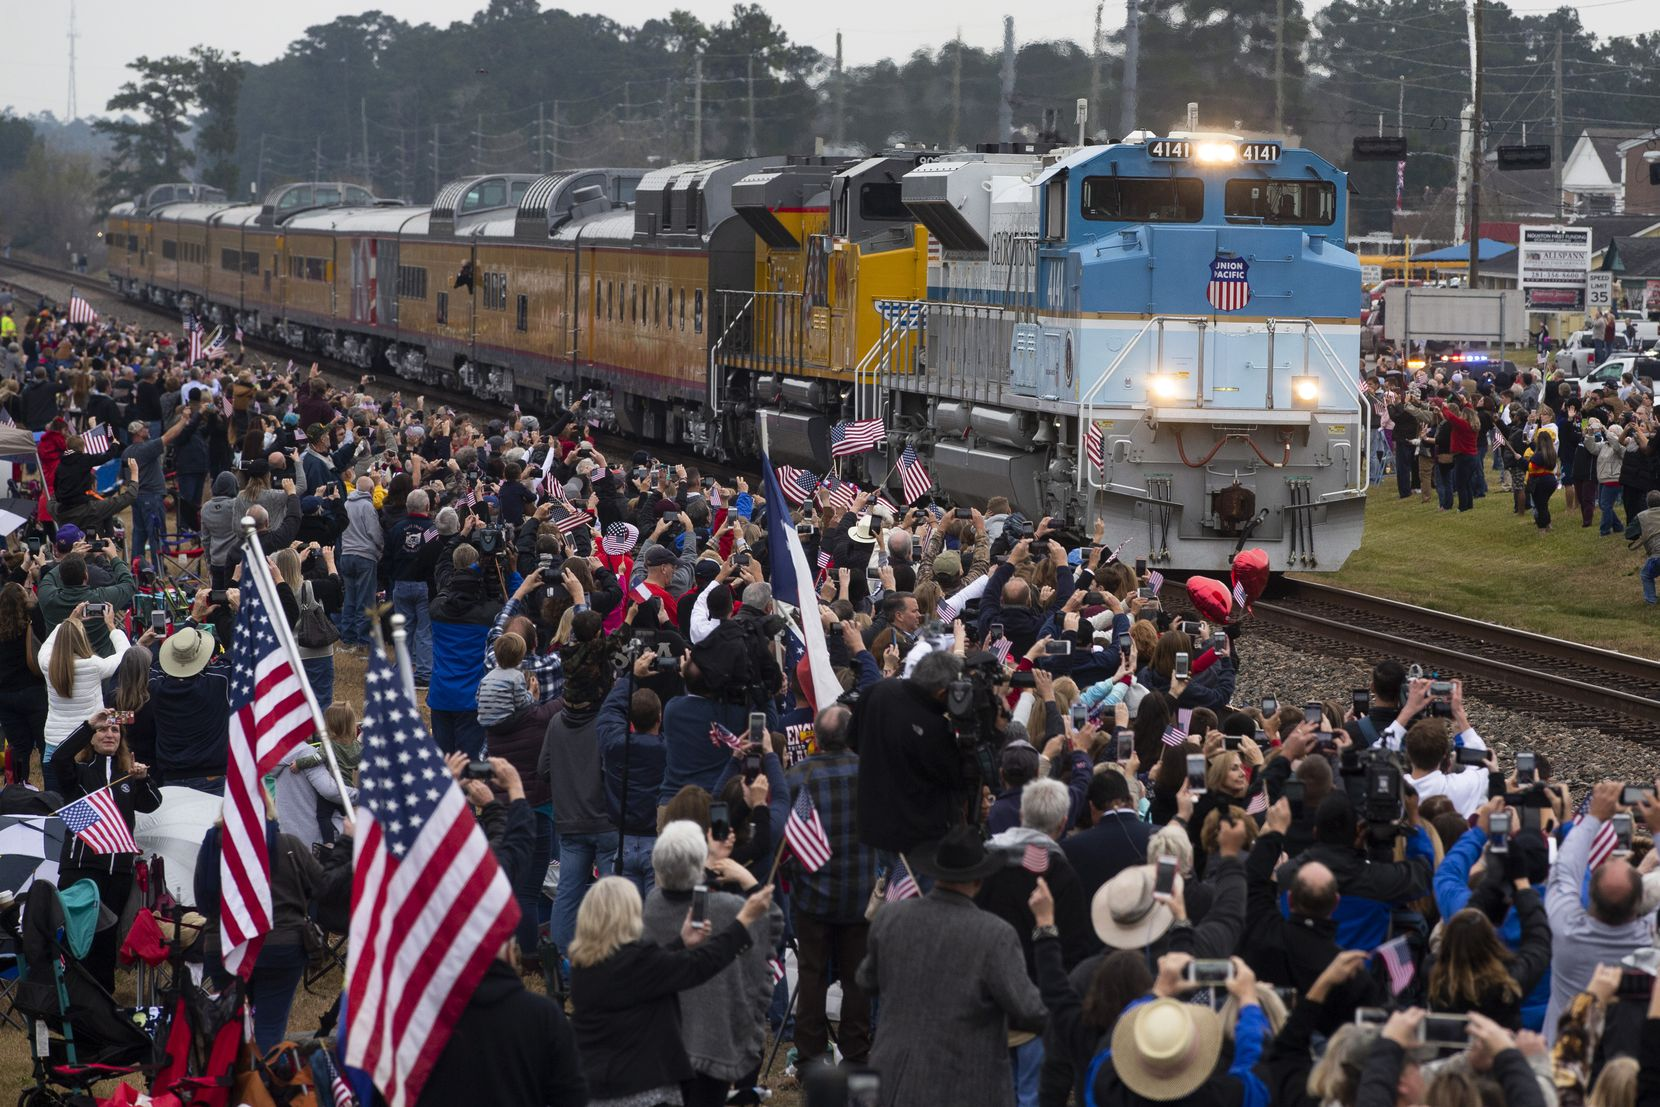 Mourners watch as a train carrying the remains of former President George H.W. Bush in Magnolia, Texas on Wednesday, December 6, 2018. The train traveled along the Union Pacific Corp. rail line from Spring to College Station. Bush died on November 30, 2018. (Shaban Athuman/The Dallas Morning News)